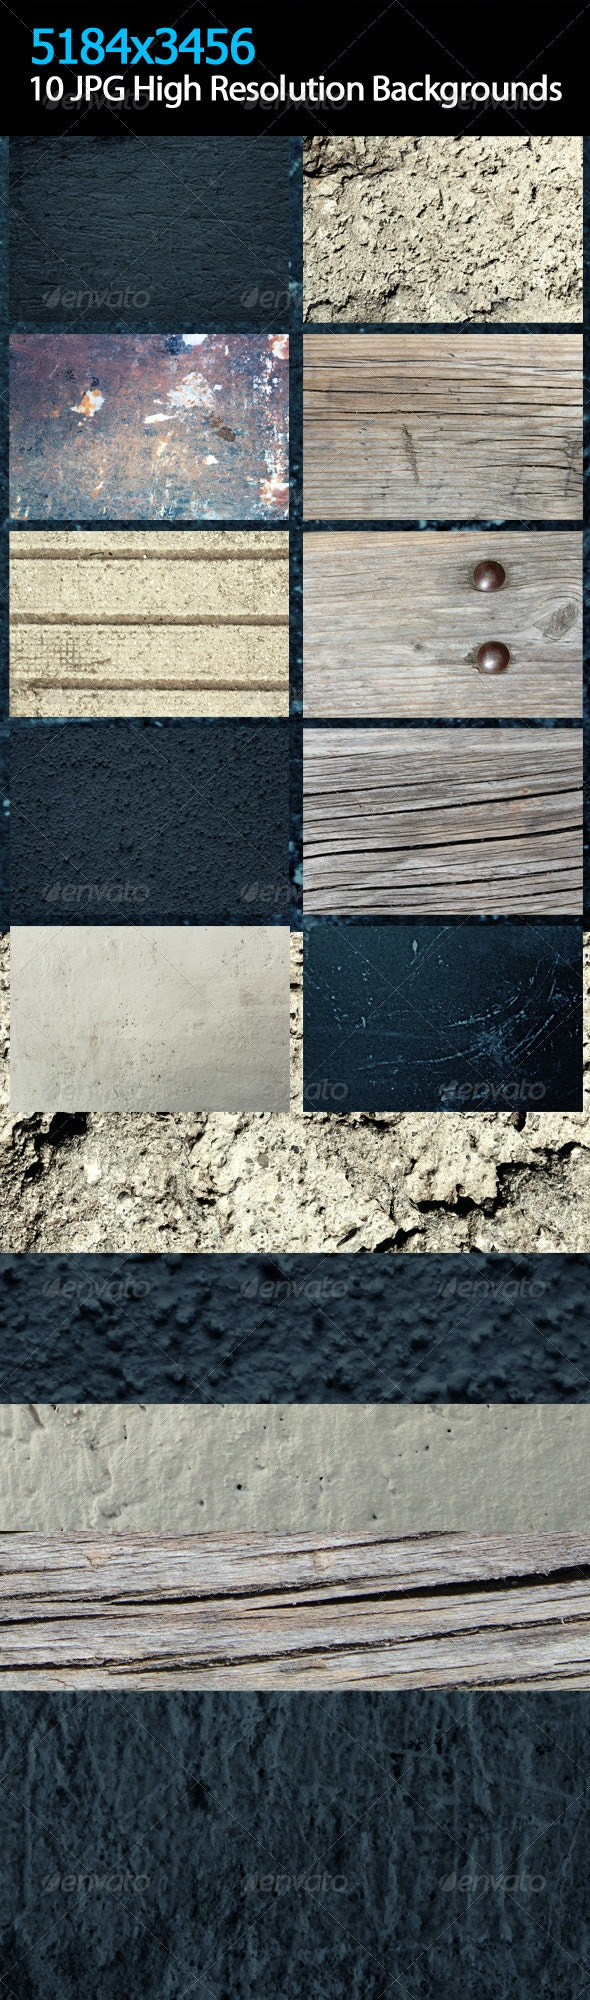 Background Texture v.1 - Backgrounds Graphics